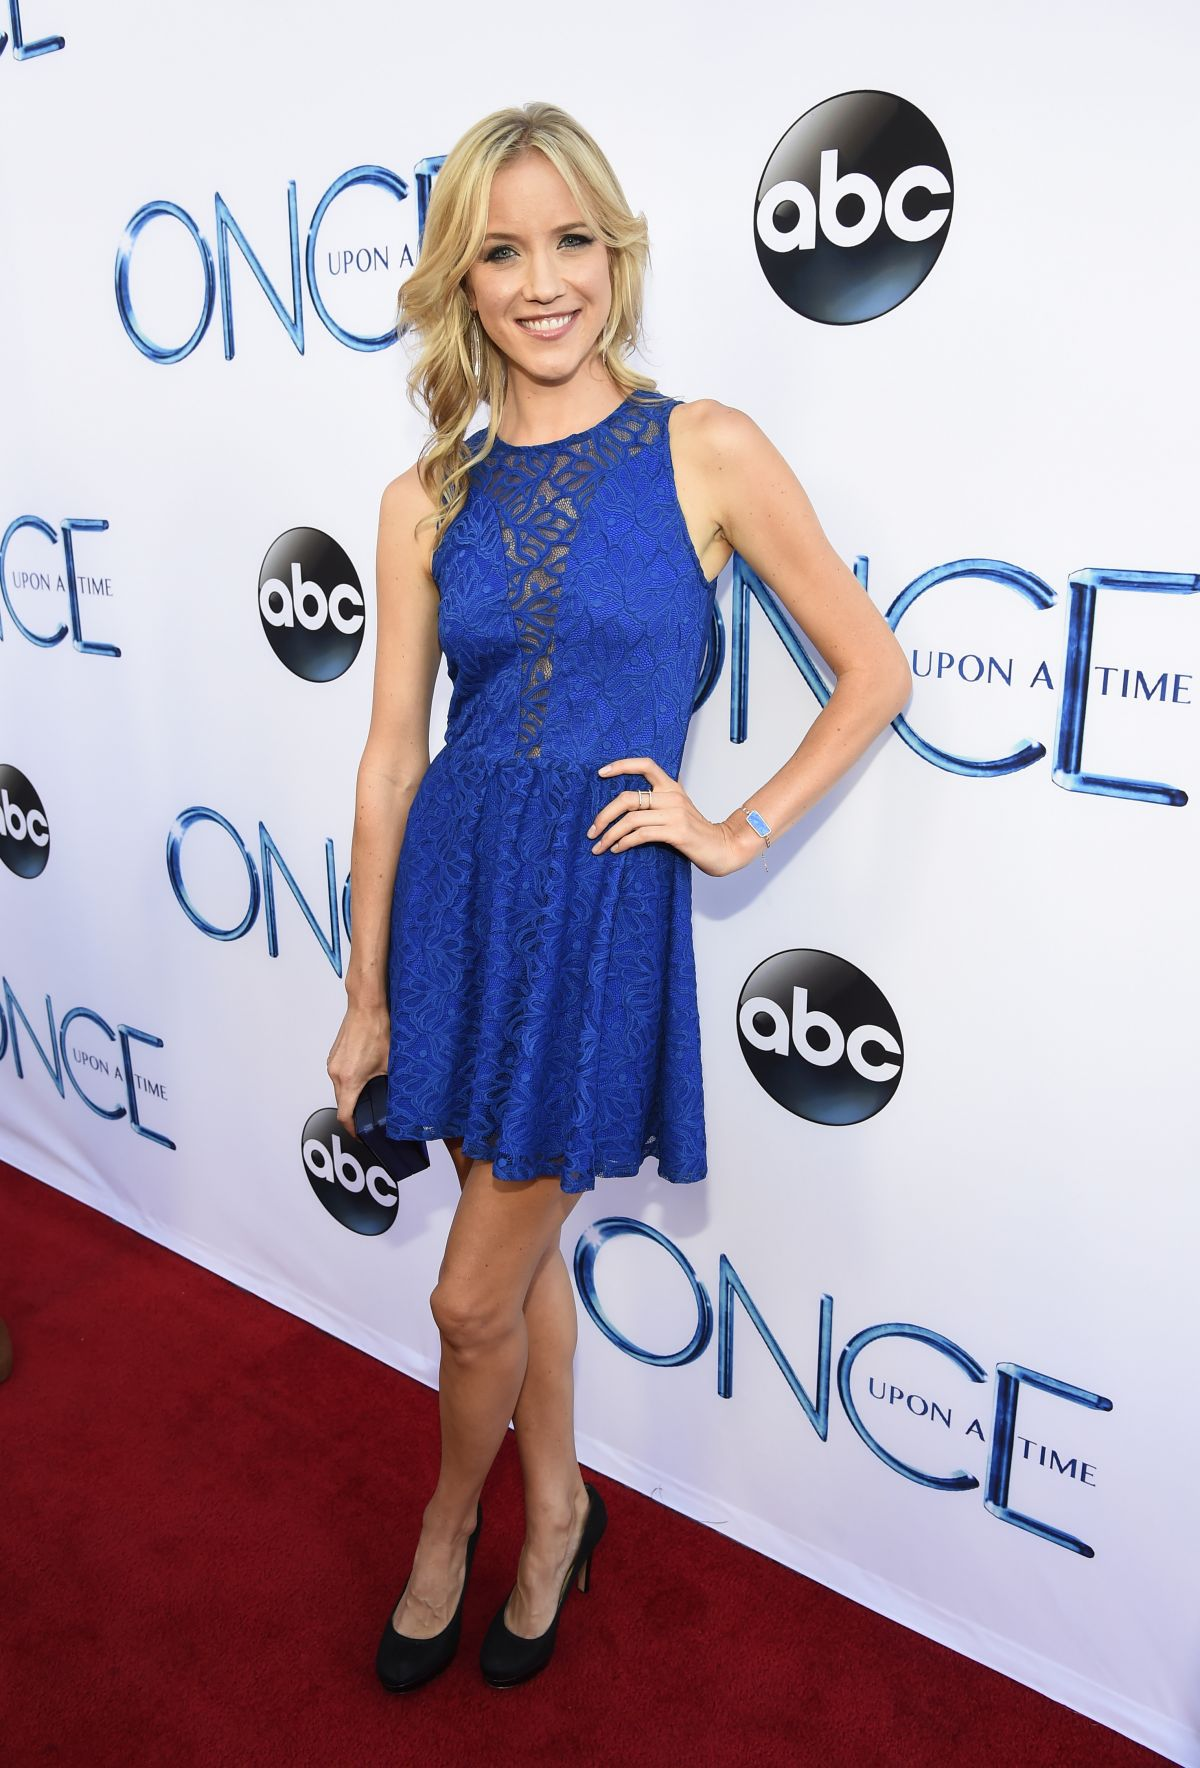 JESSY SCHRAM at Once Upon A Time Season 4 Screening in Hollywood